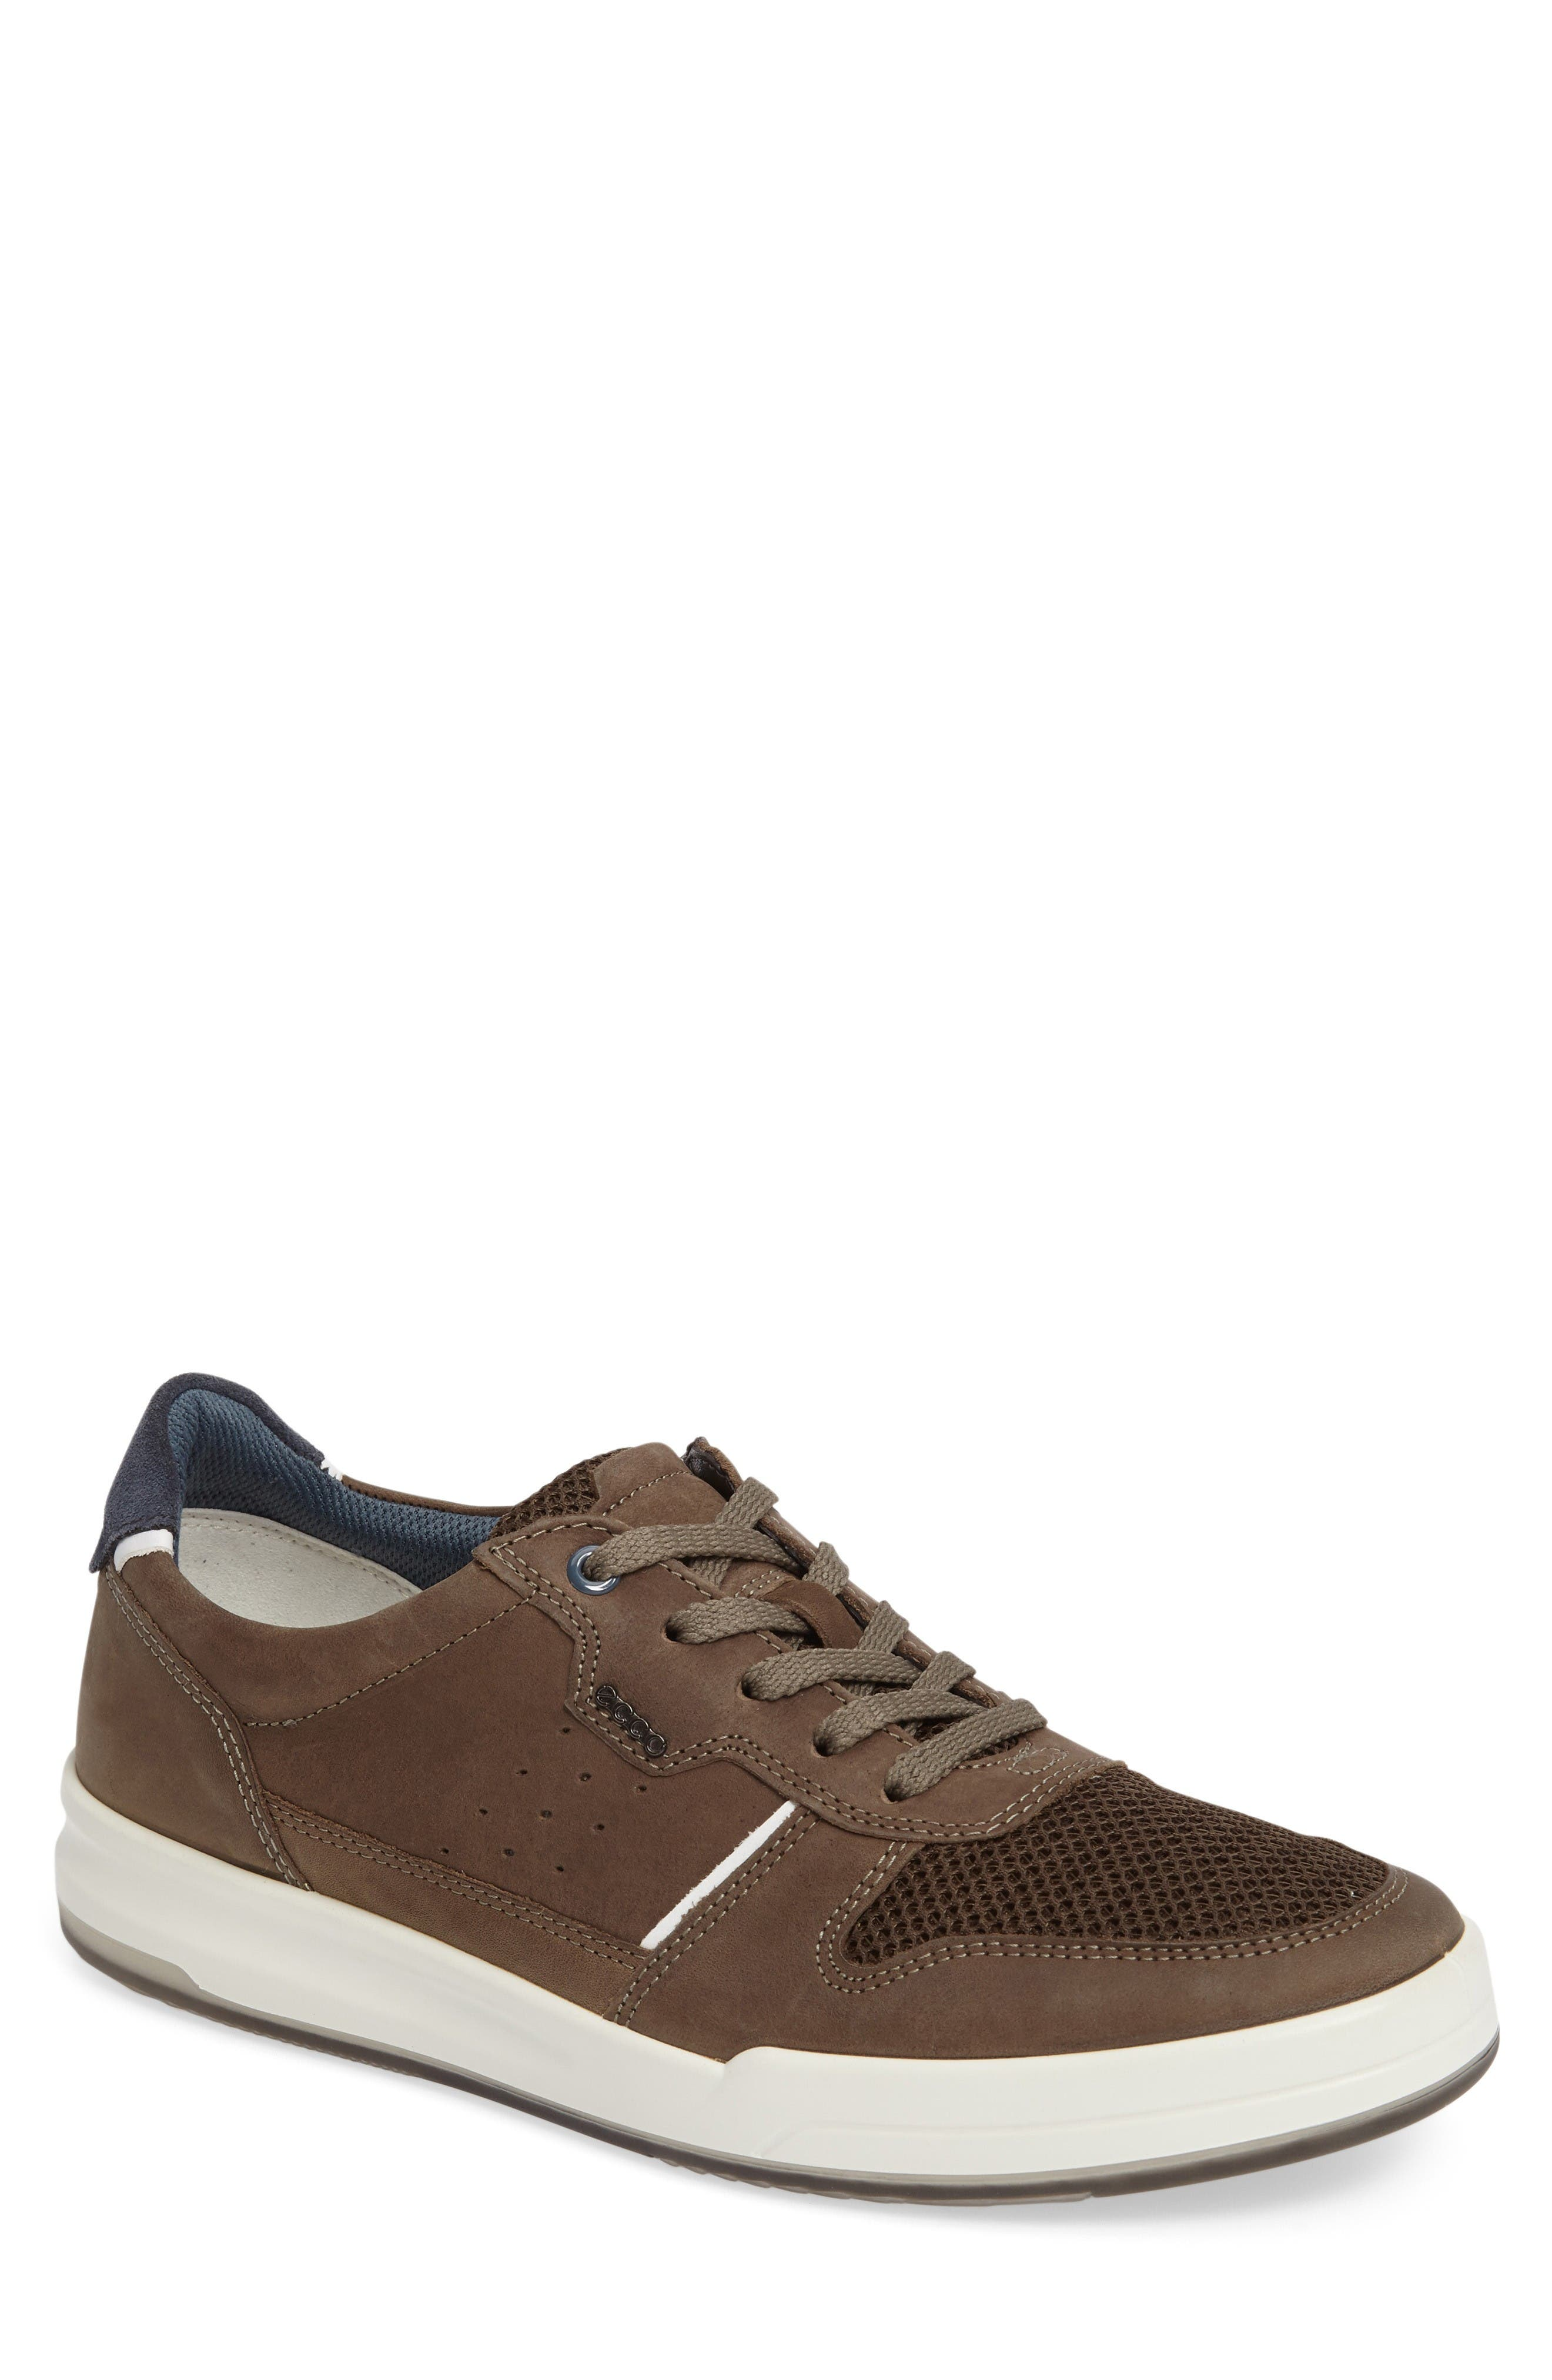 Alternate Image 1 Selected - ECCO Jack Sneaker (Men)